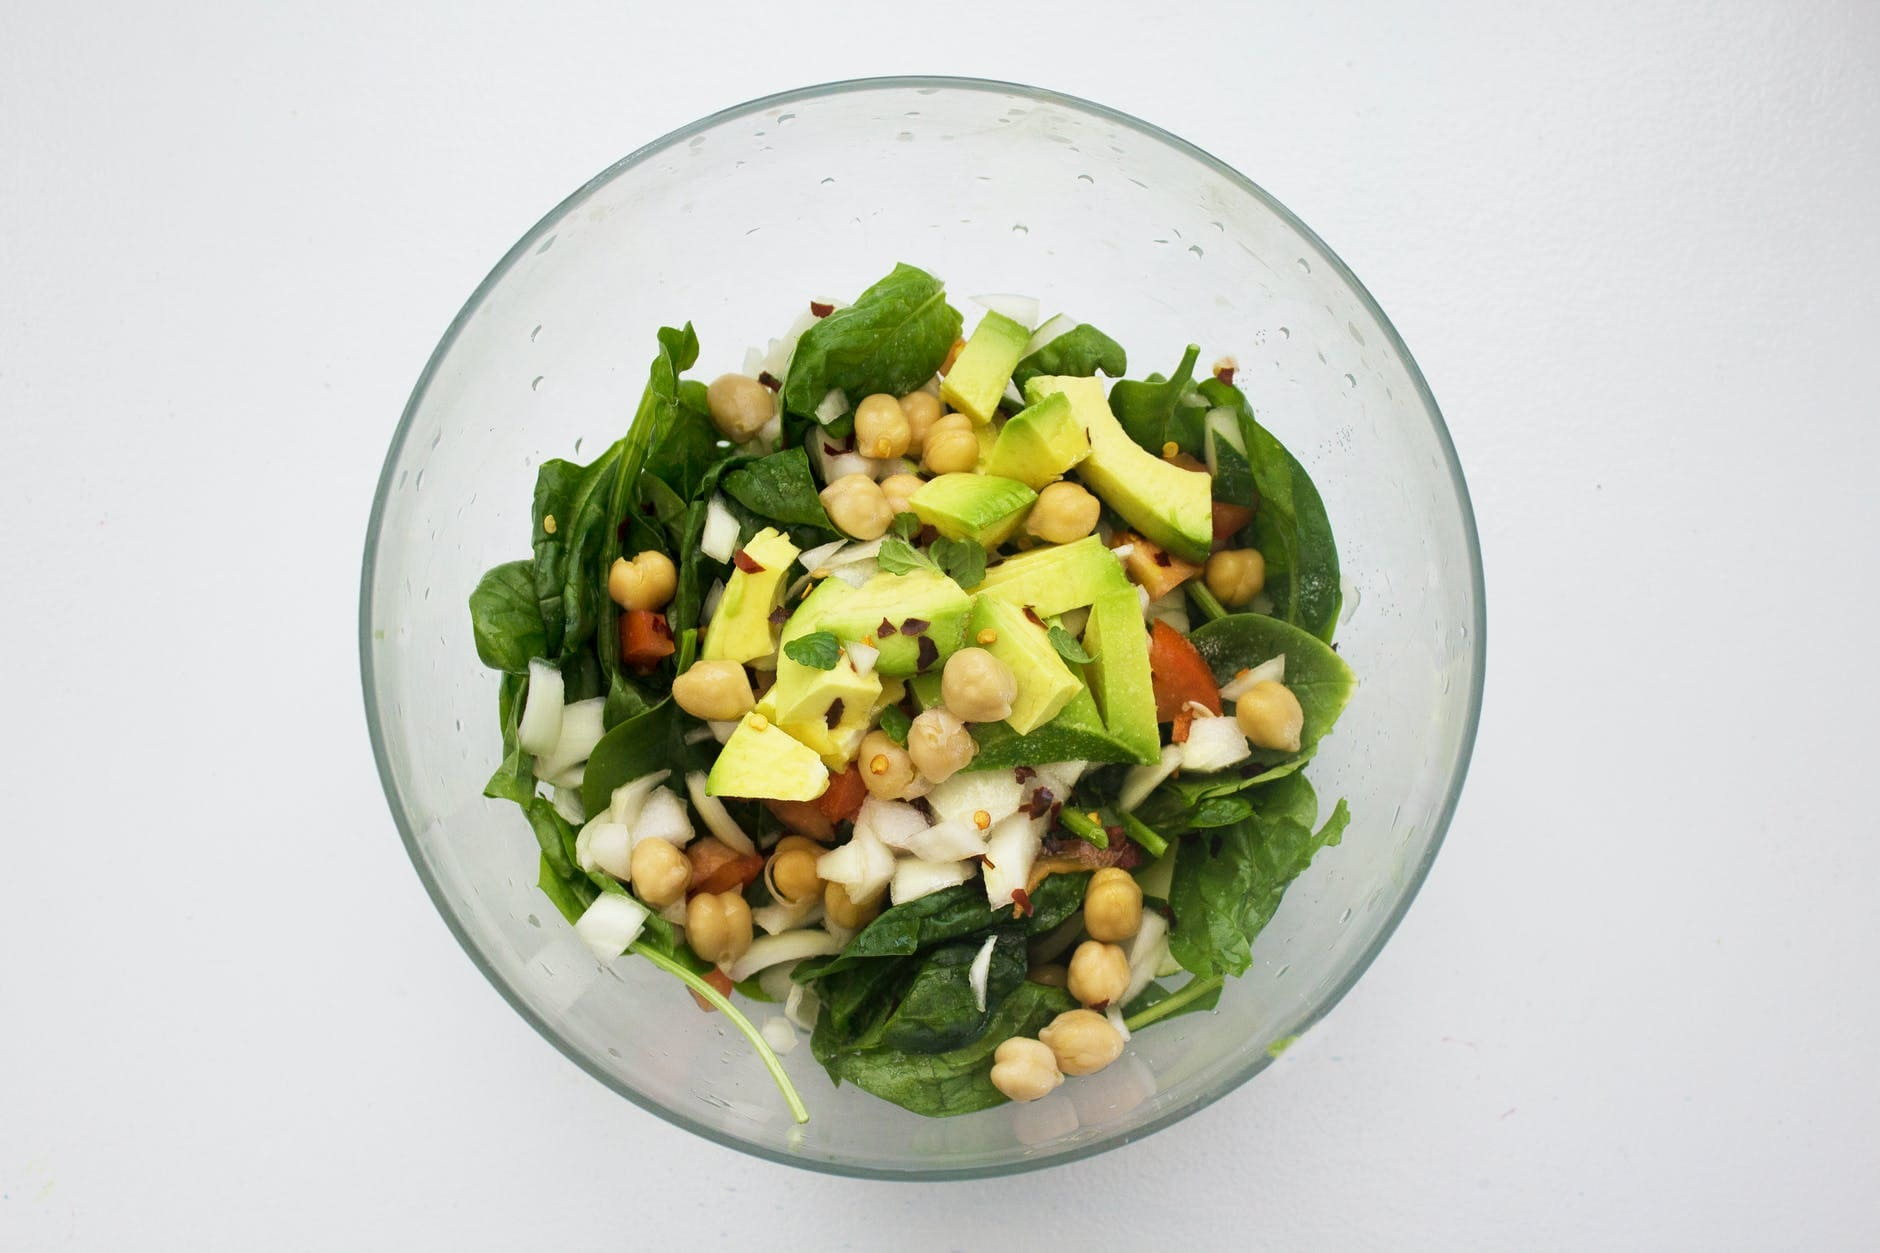 Avocado salad for diet easy and fast